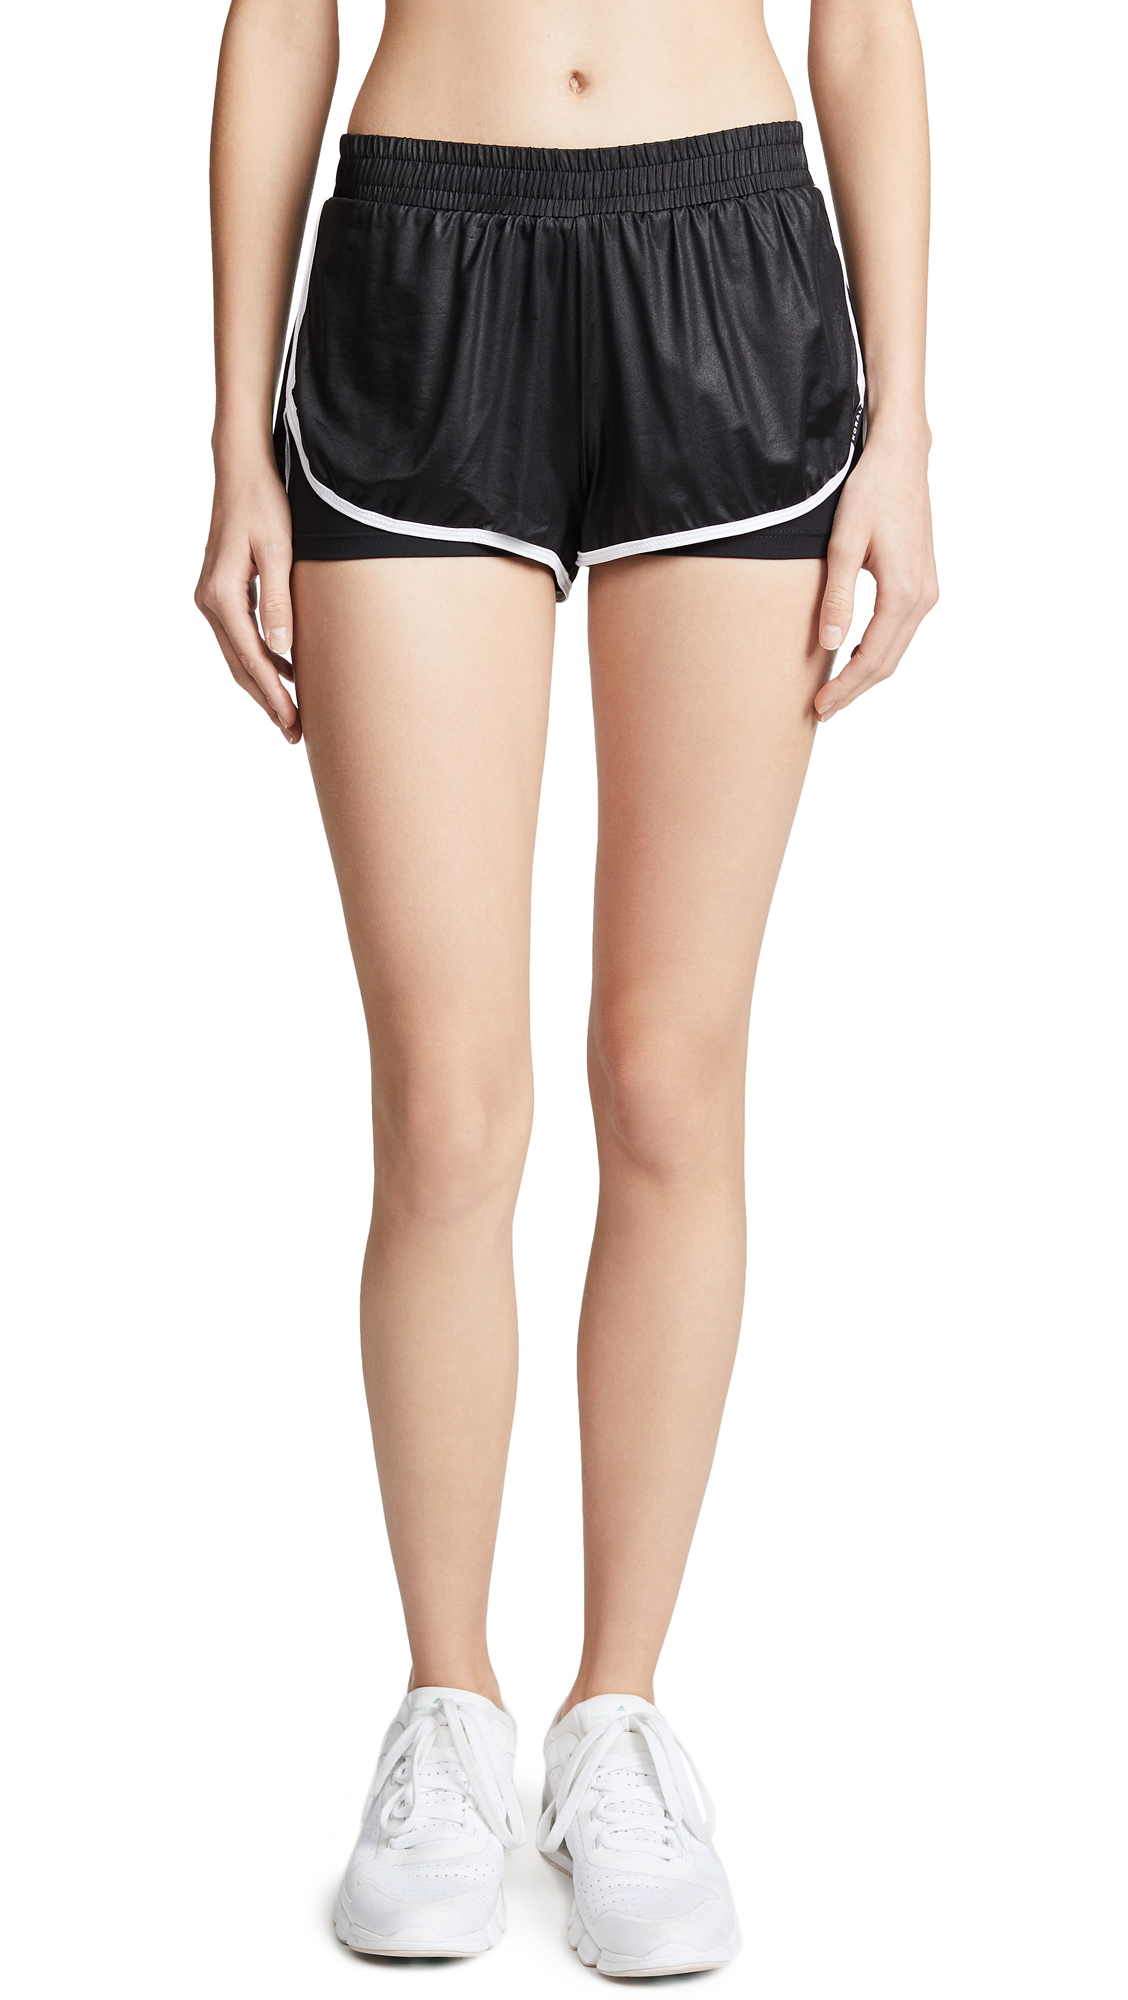 KORAL ACTIVEWEAR Scout Shorts In Black/White